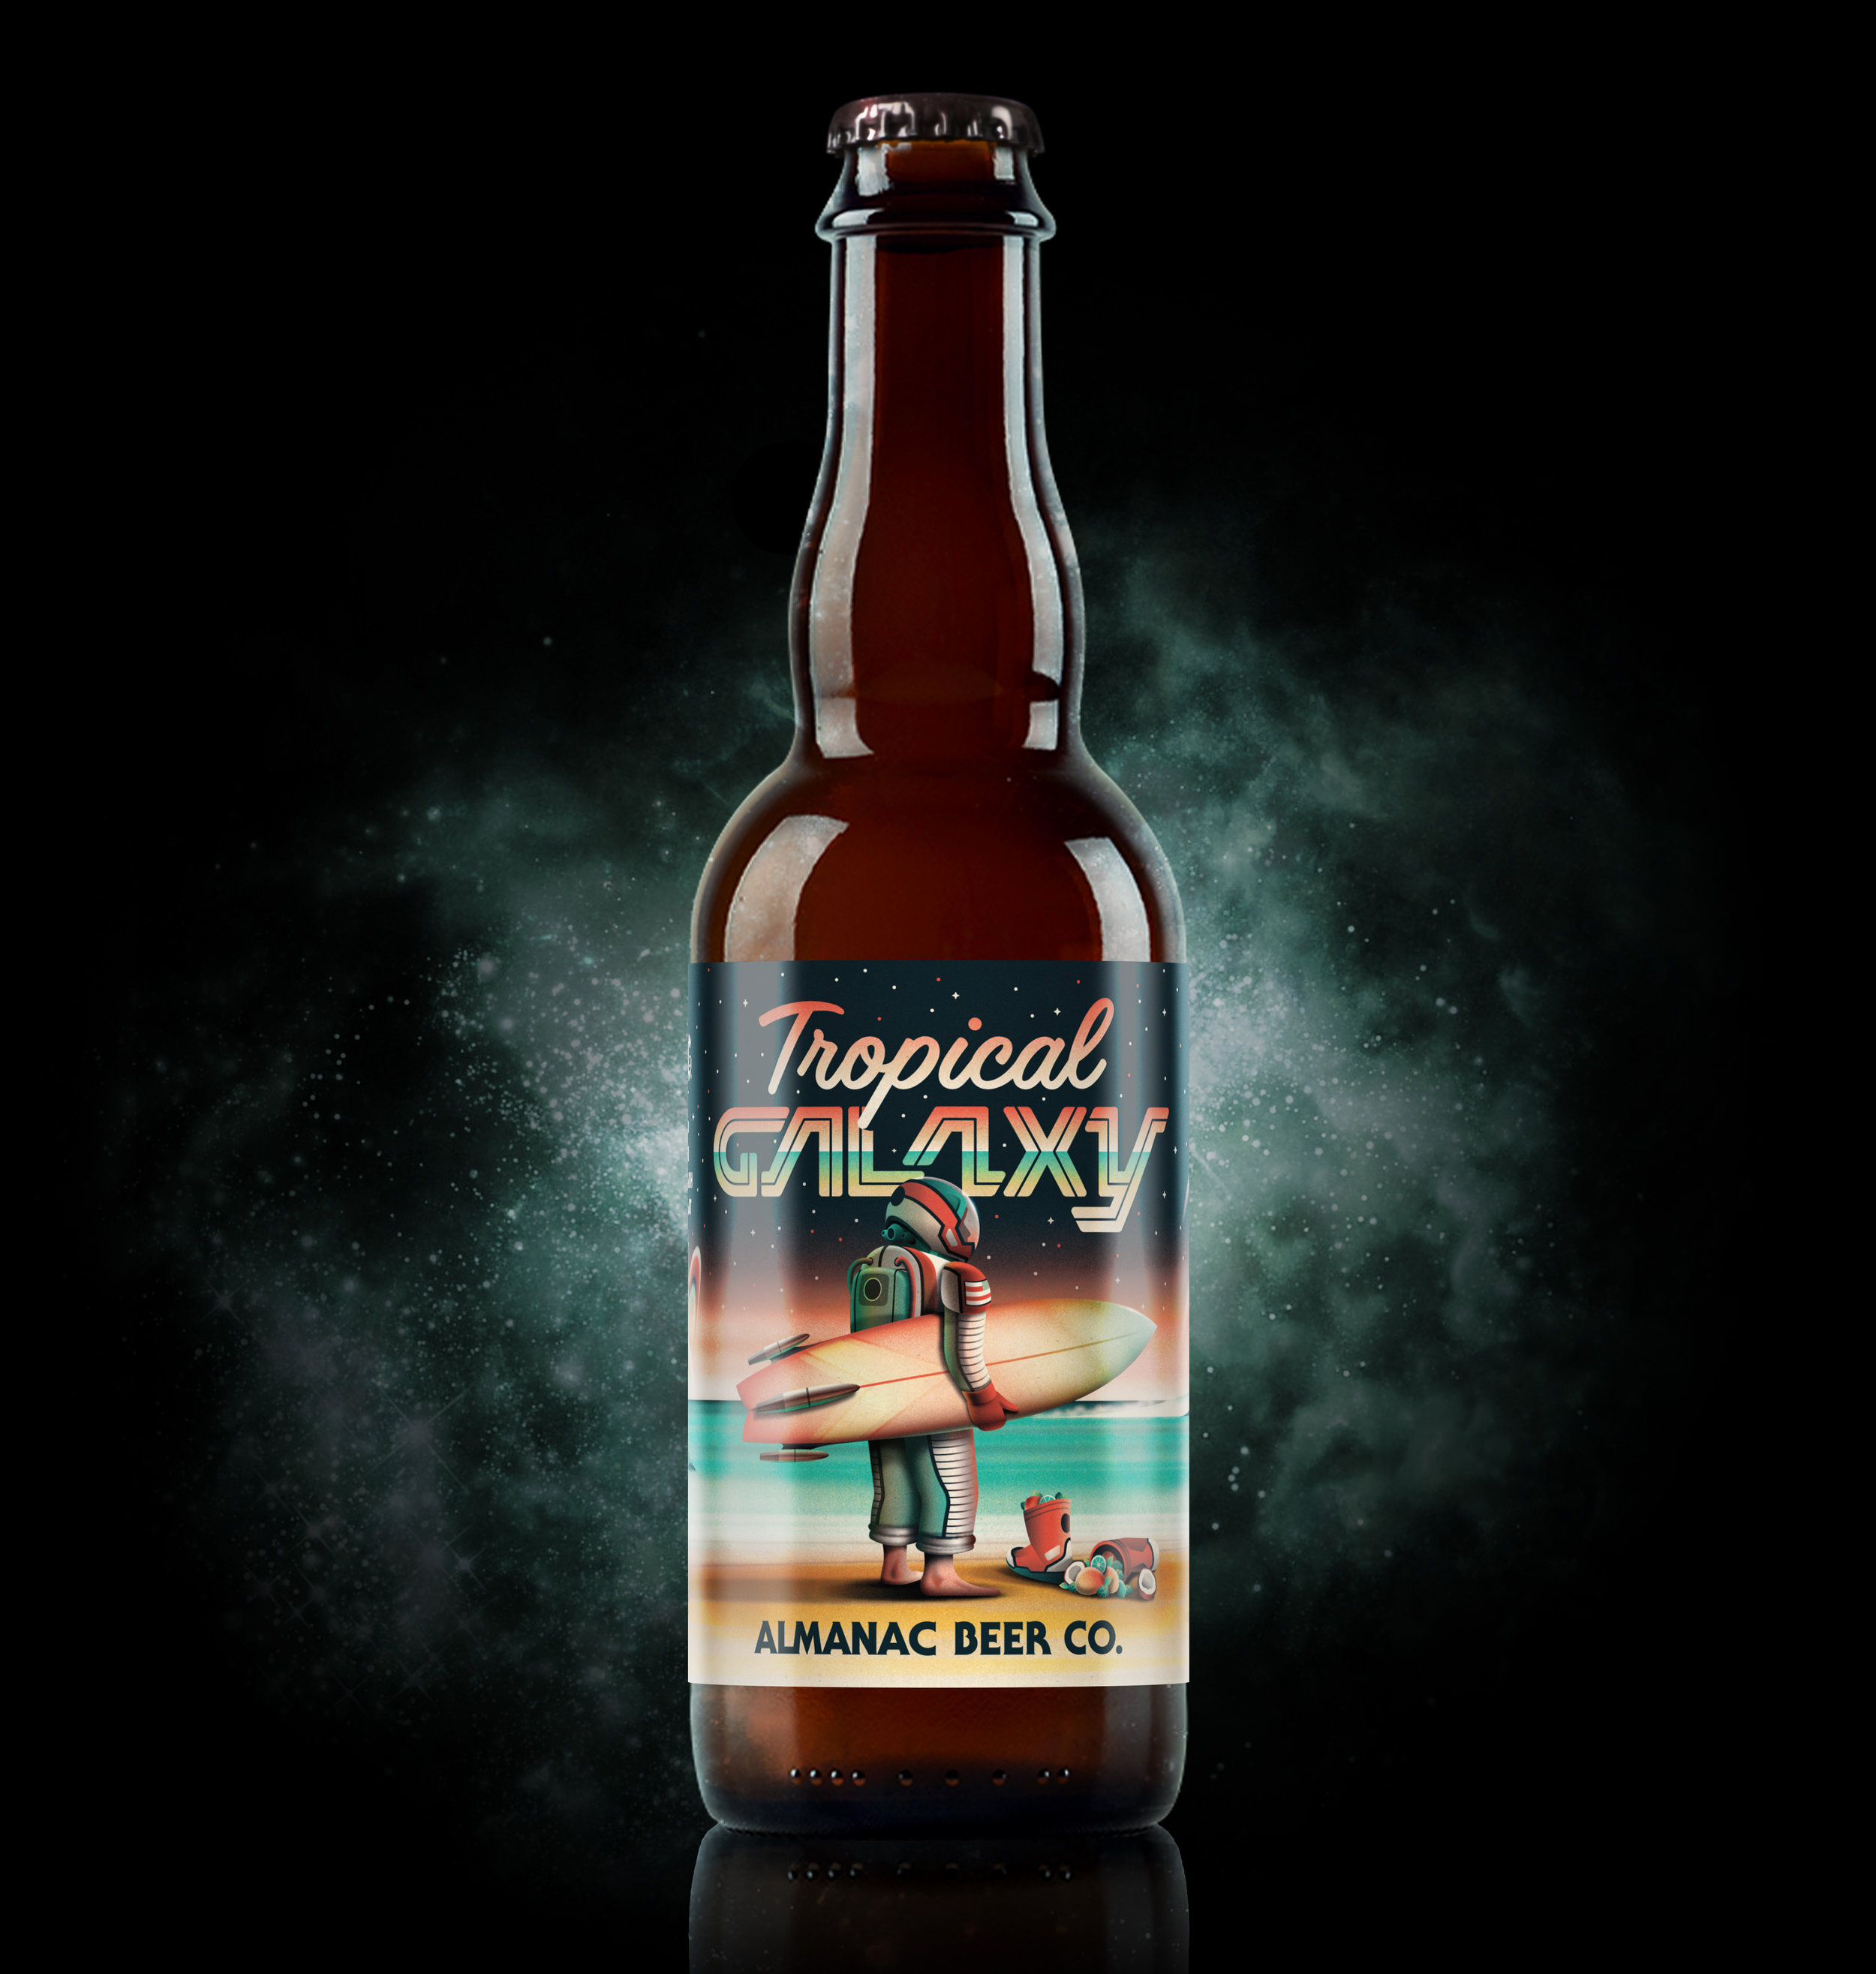 Almanac Beer Co. Tropical Galaxy by DKNG